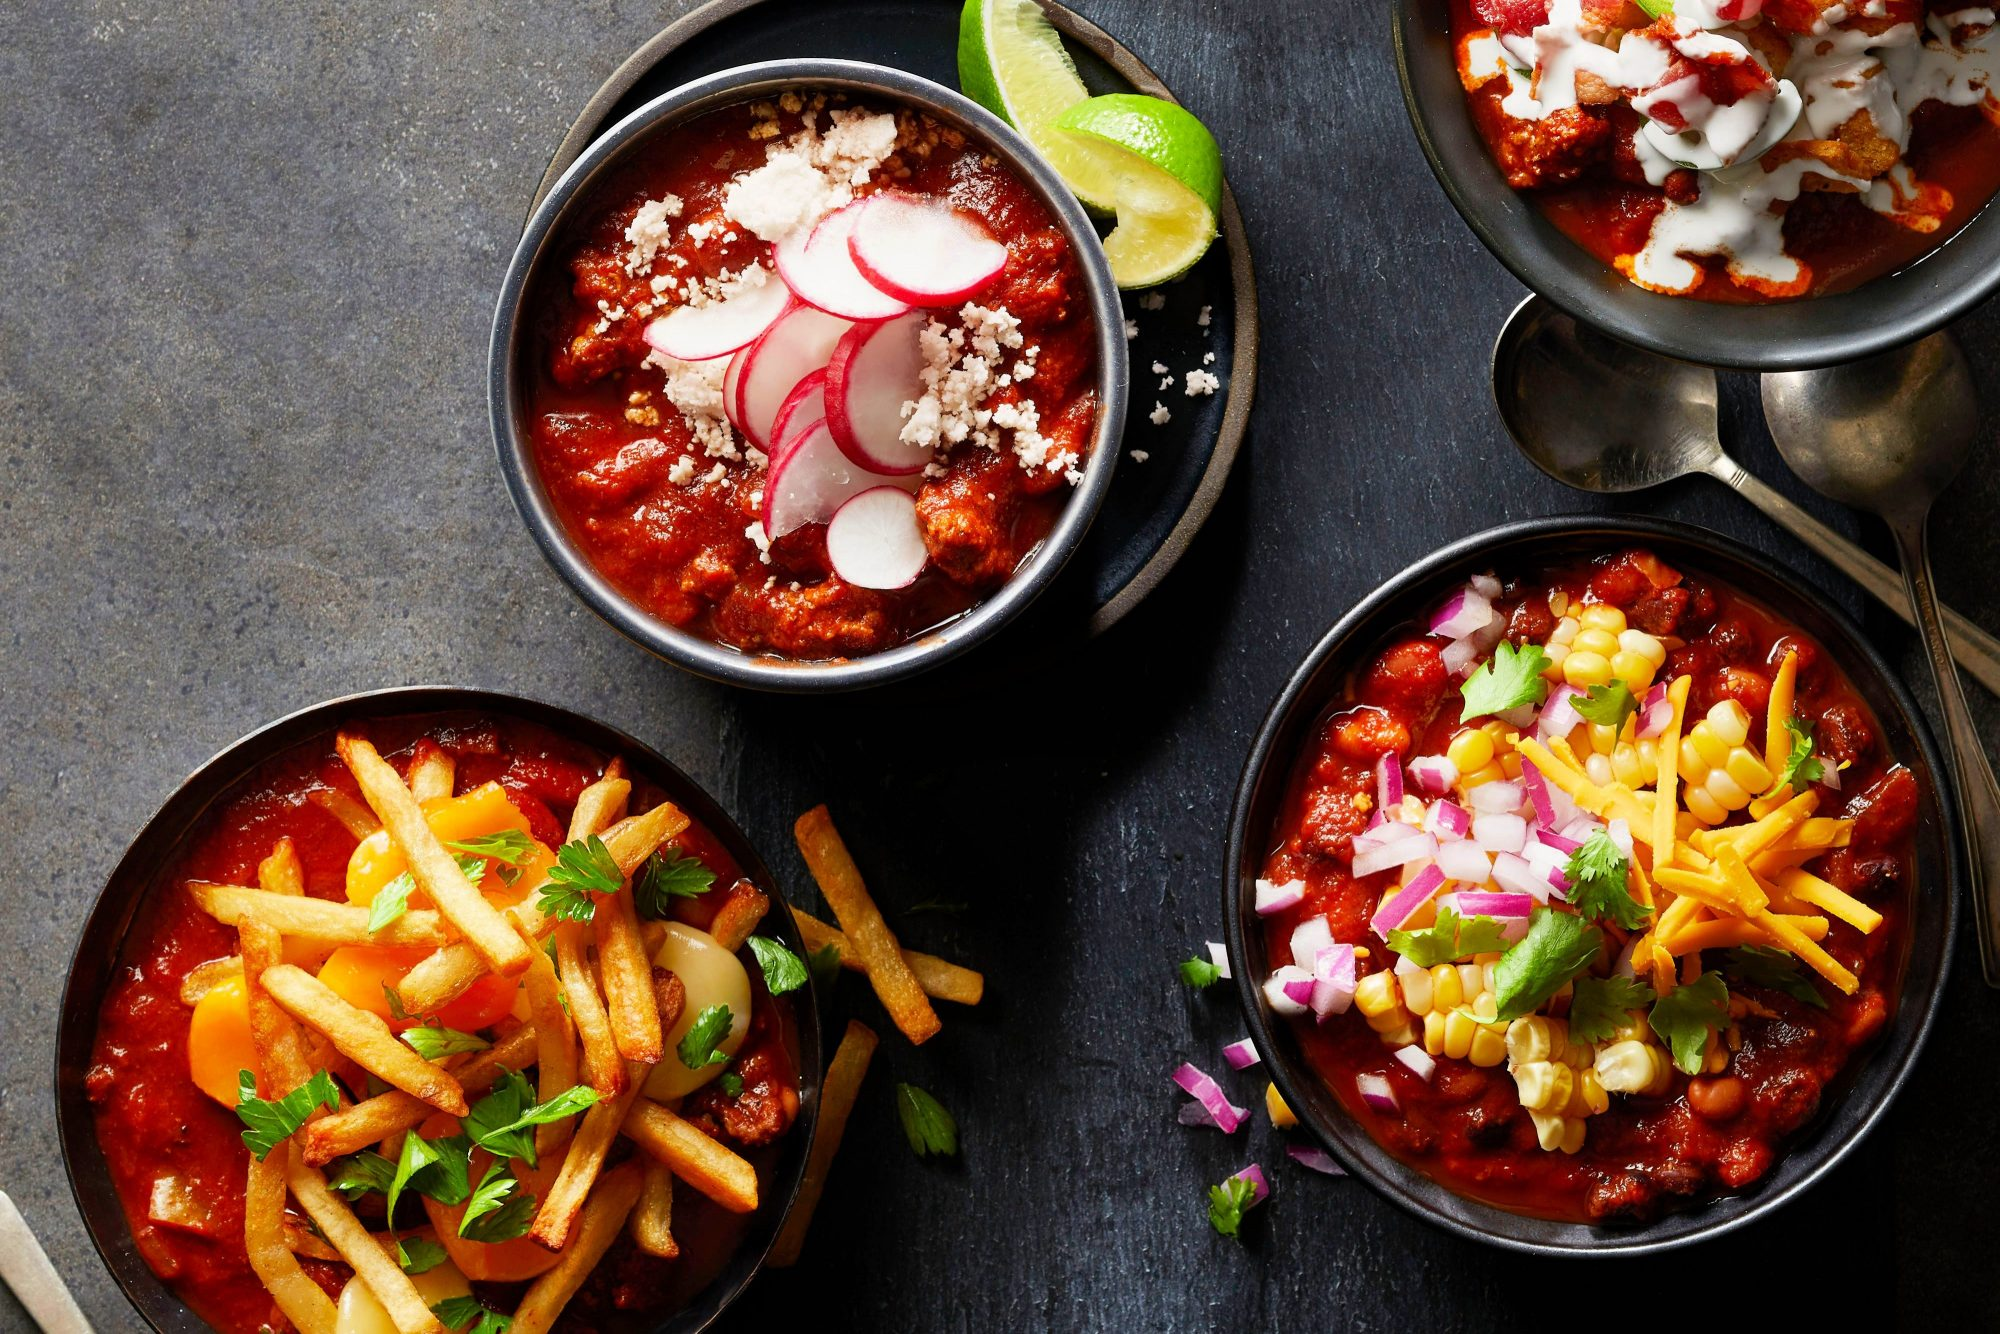 bowls of chili garnished with an array of toppings